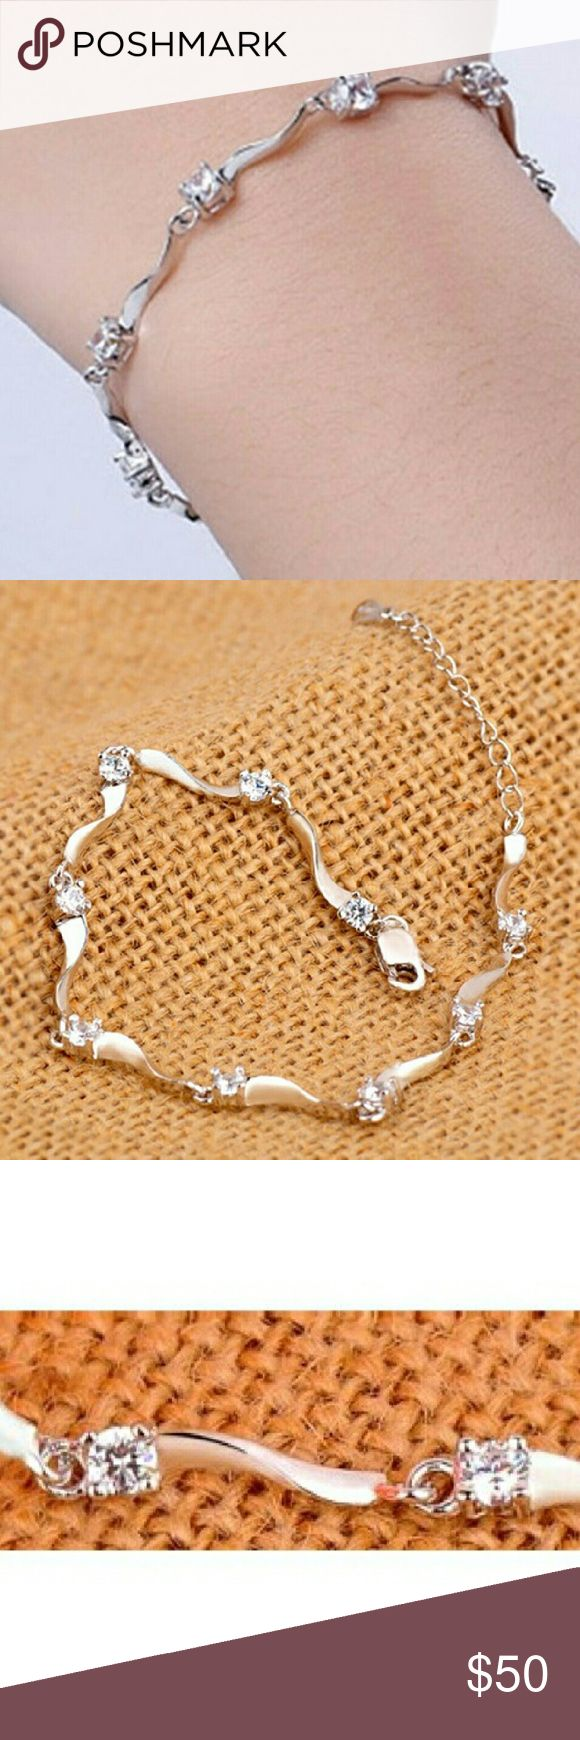 """Sterling Silver Austrian Crystal diamond Bracelet A delicate Sterling Silver bracelet with clear Austrian Crystals that is 6.25 extendable to 8.25"""". The unique link design gives this bracelet its distinct beauty. This will pair with casual or dressy attire alike. This is a fabulous gift for yourself or for someone you know.  Wear it everyday day or with a little black dress. Weddings, parties, galas, picnics, work, date night, proms etc I also have the purple one in the pic- check out my…"""